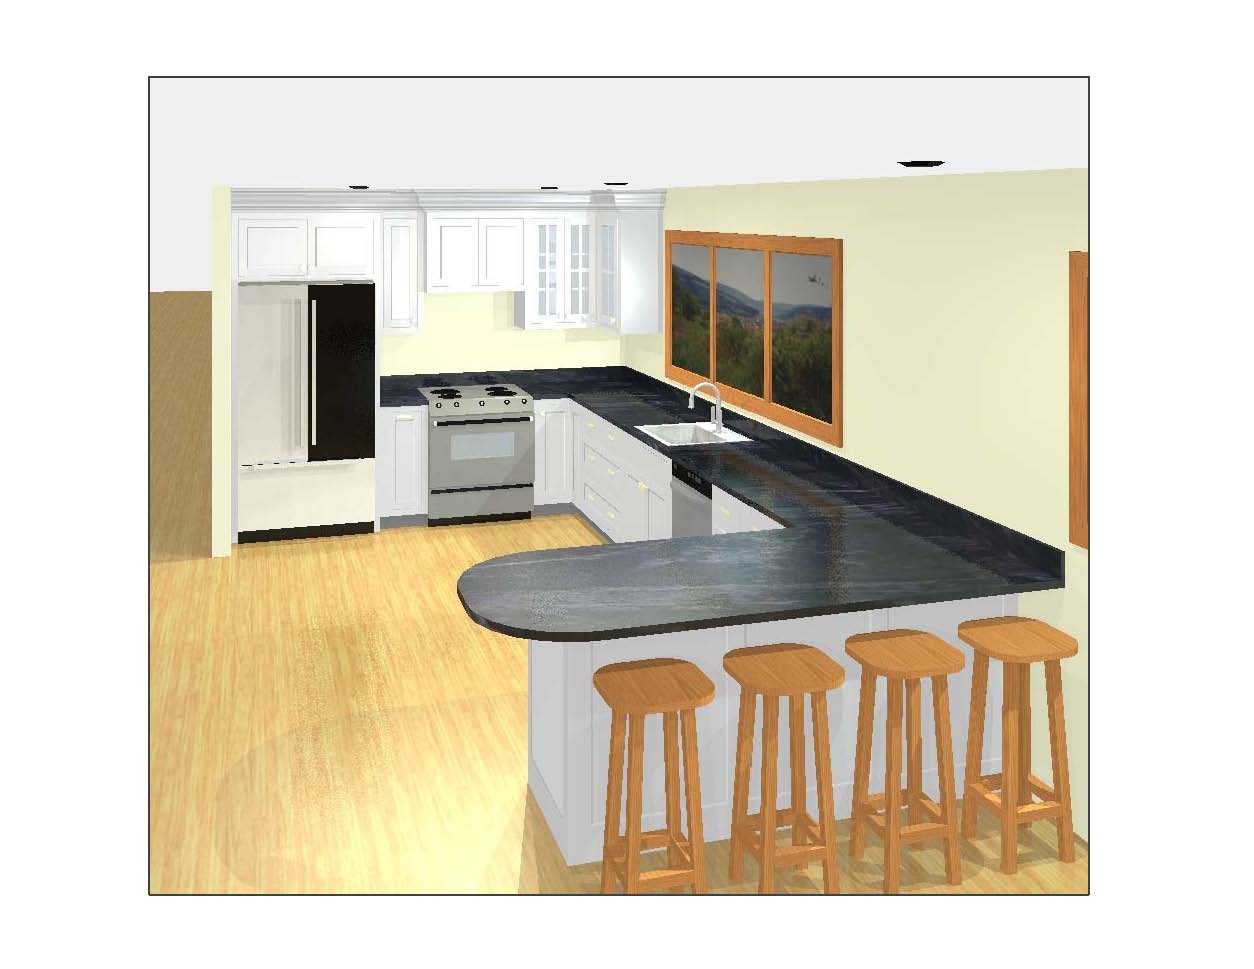 Kitchen Design Jobs Obsidiansmaze